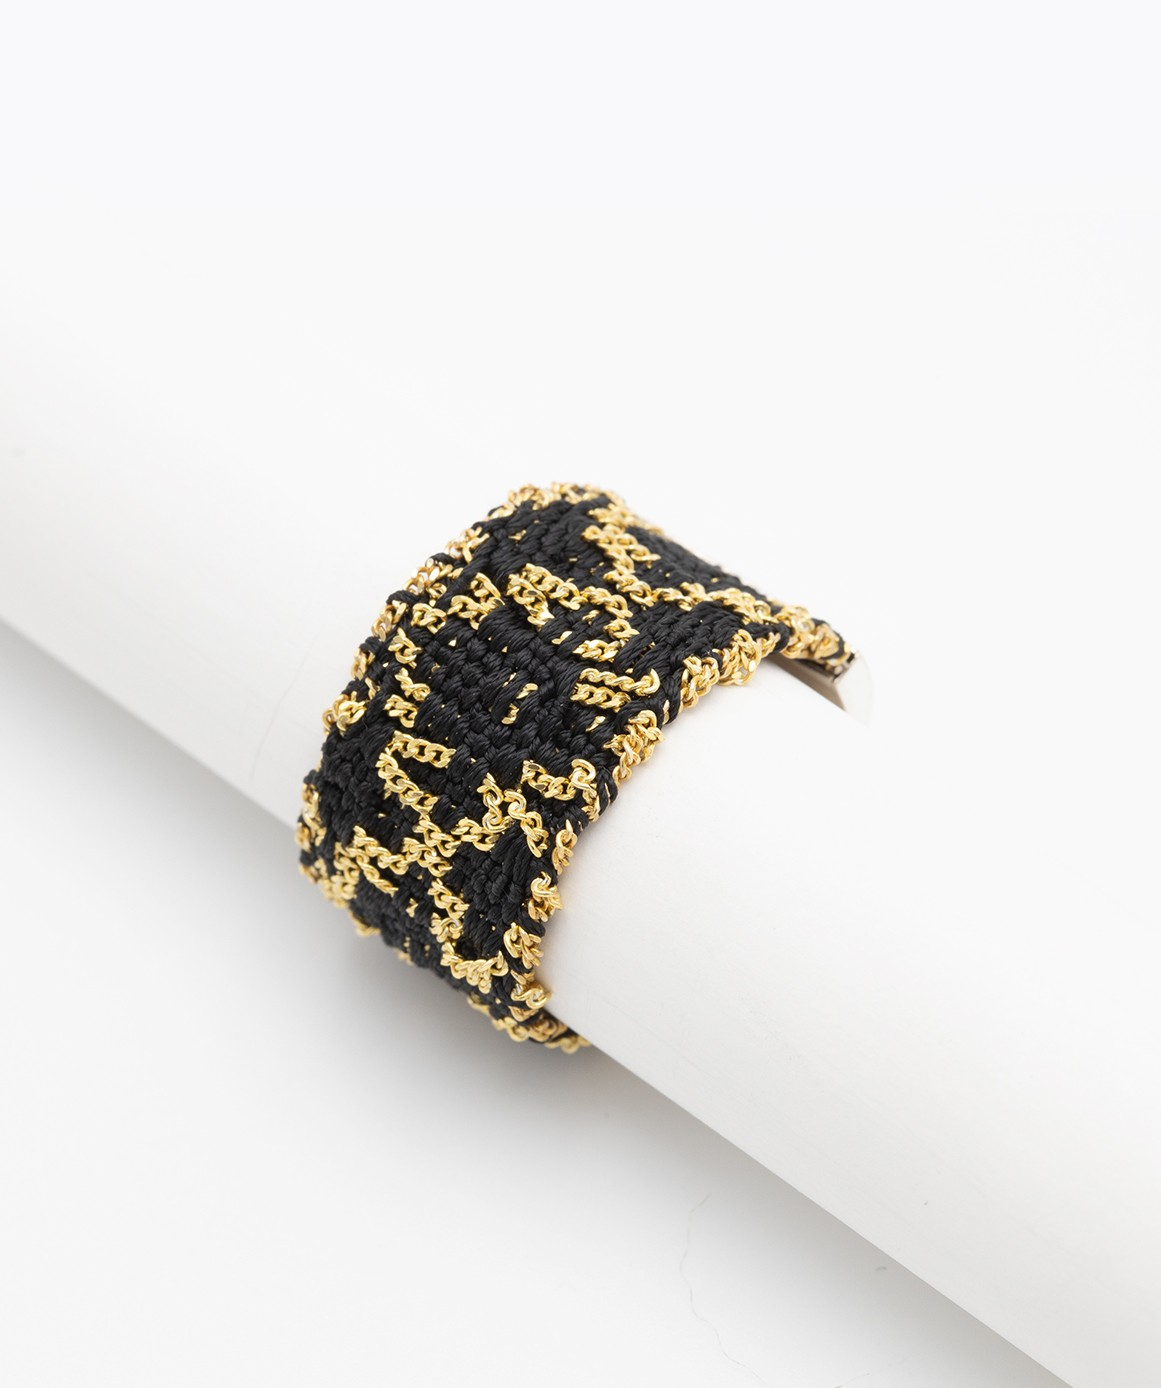 RHOMBUS Ring in Sterling Silver 18Kt. Yellow gold plated. Fabric: Black